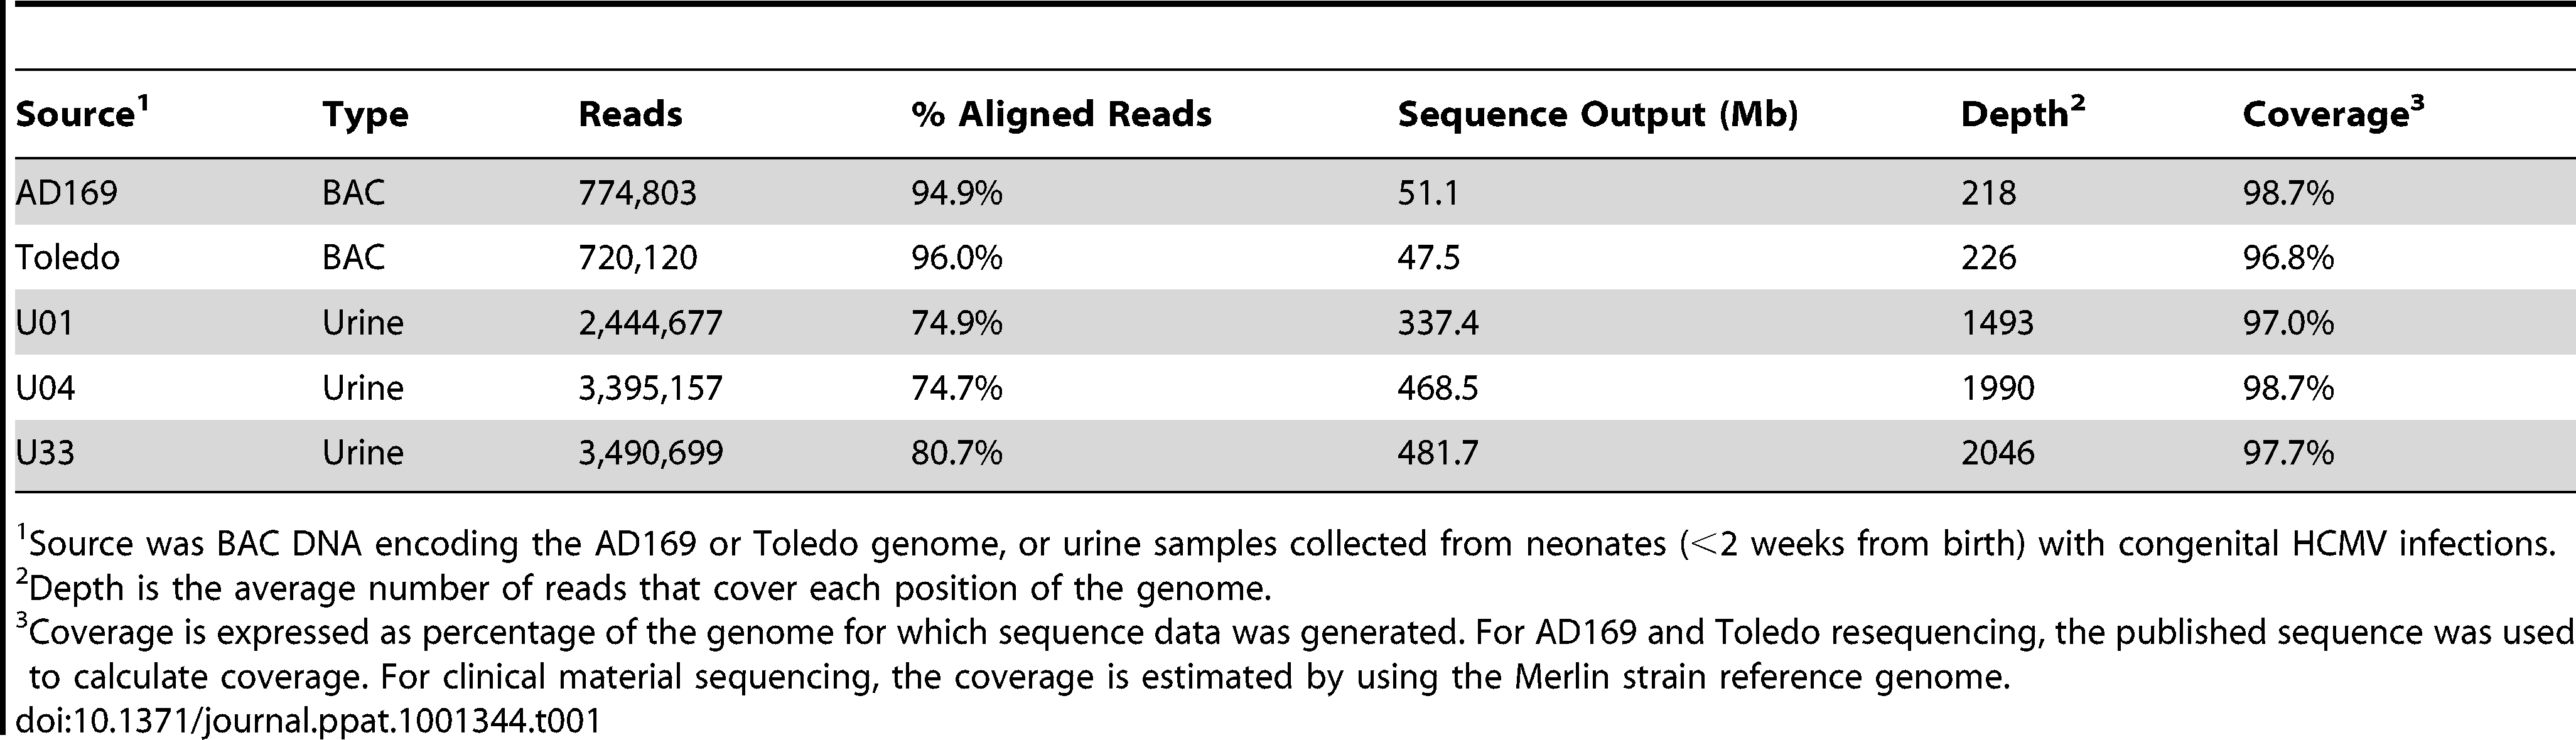 Sequence output of high throughput sequencing experiments.